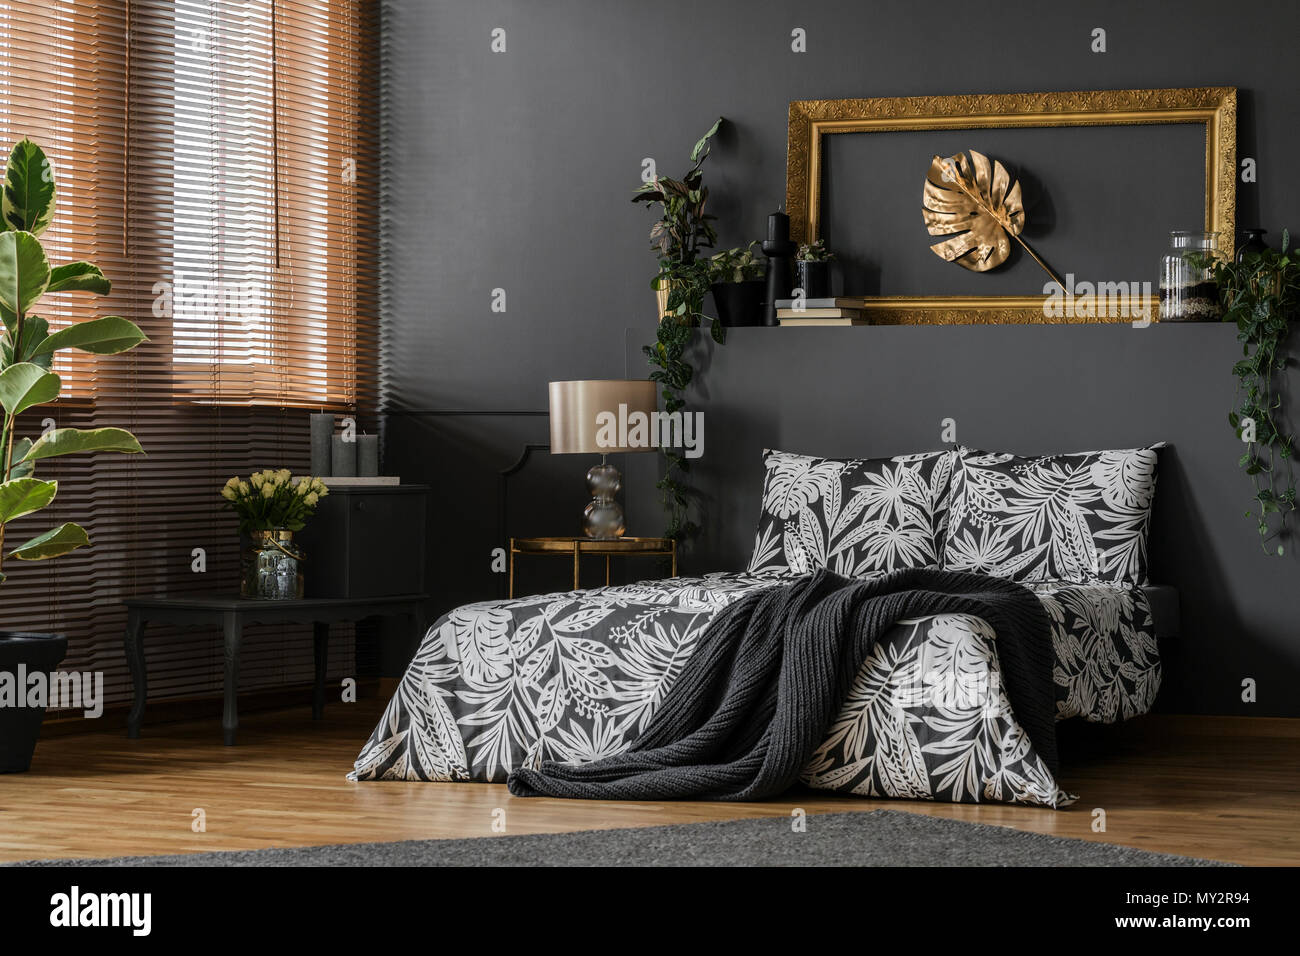 Glass Lamp Placed On A Gold End Table Standing By The King Size Bed In Dark Grey Bedroom Interior With Windows And Green Plants Stock Photo Alamy